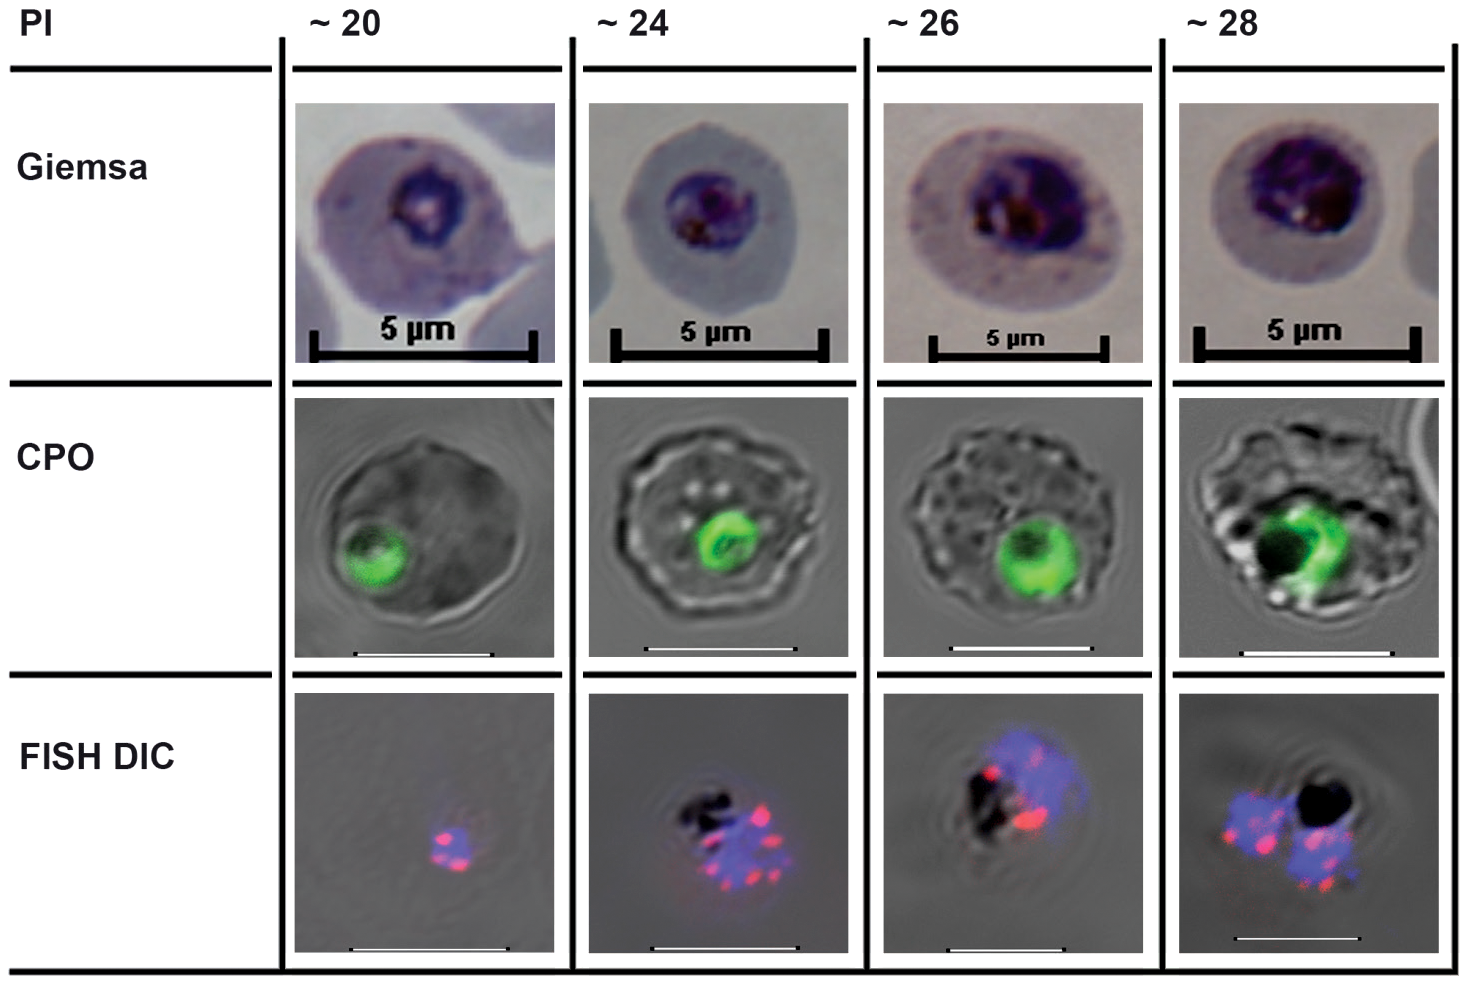 The cell biological context of <i>P. falciparum</i> intraerythrocytic (IE) mitotic recombination.